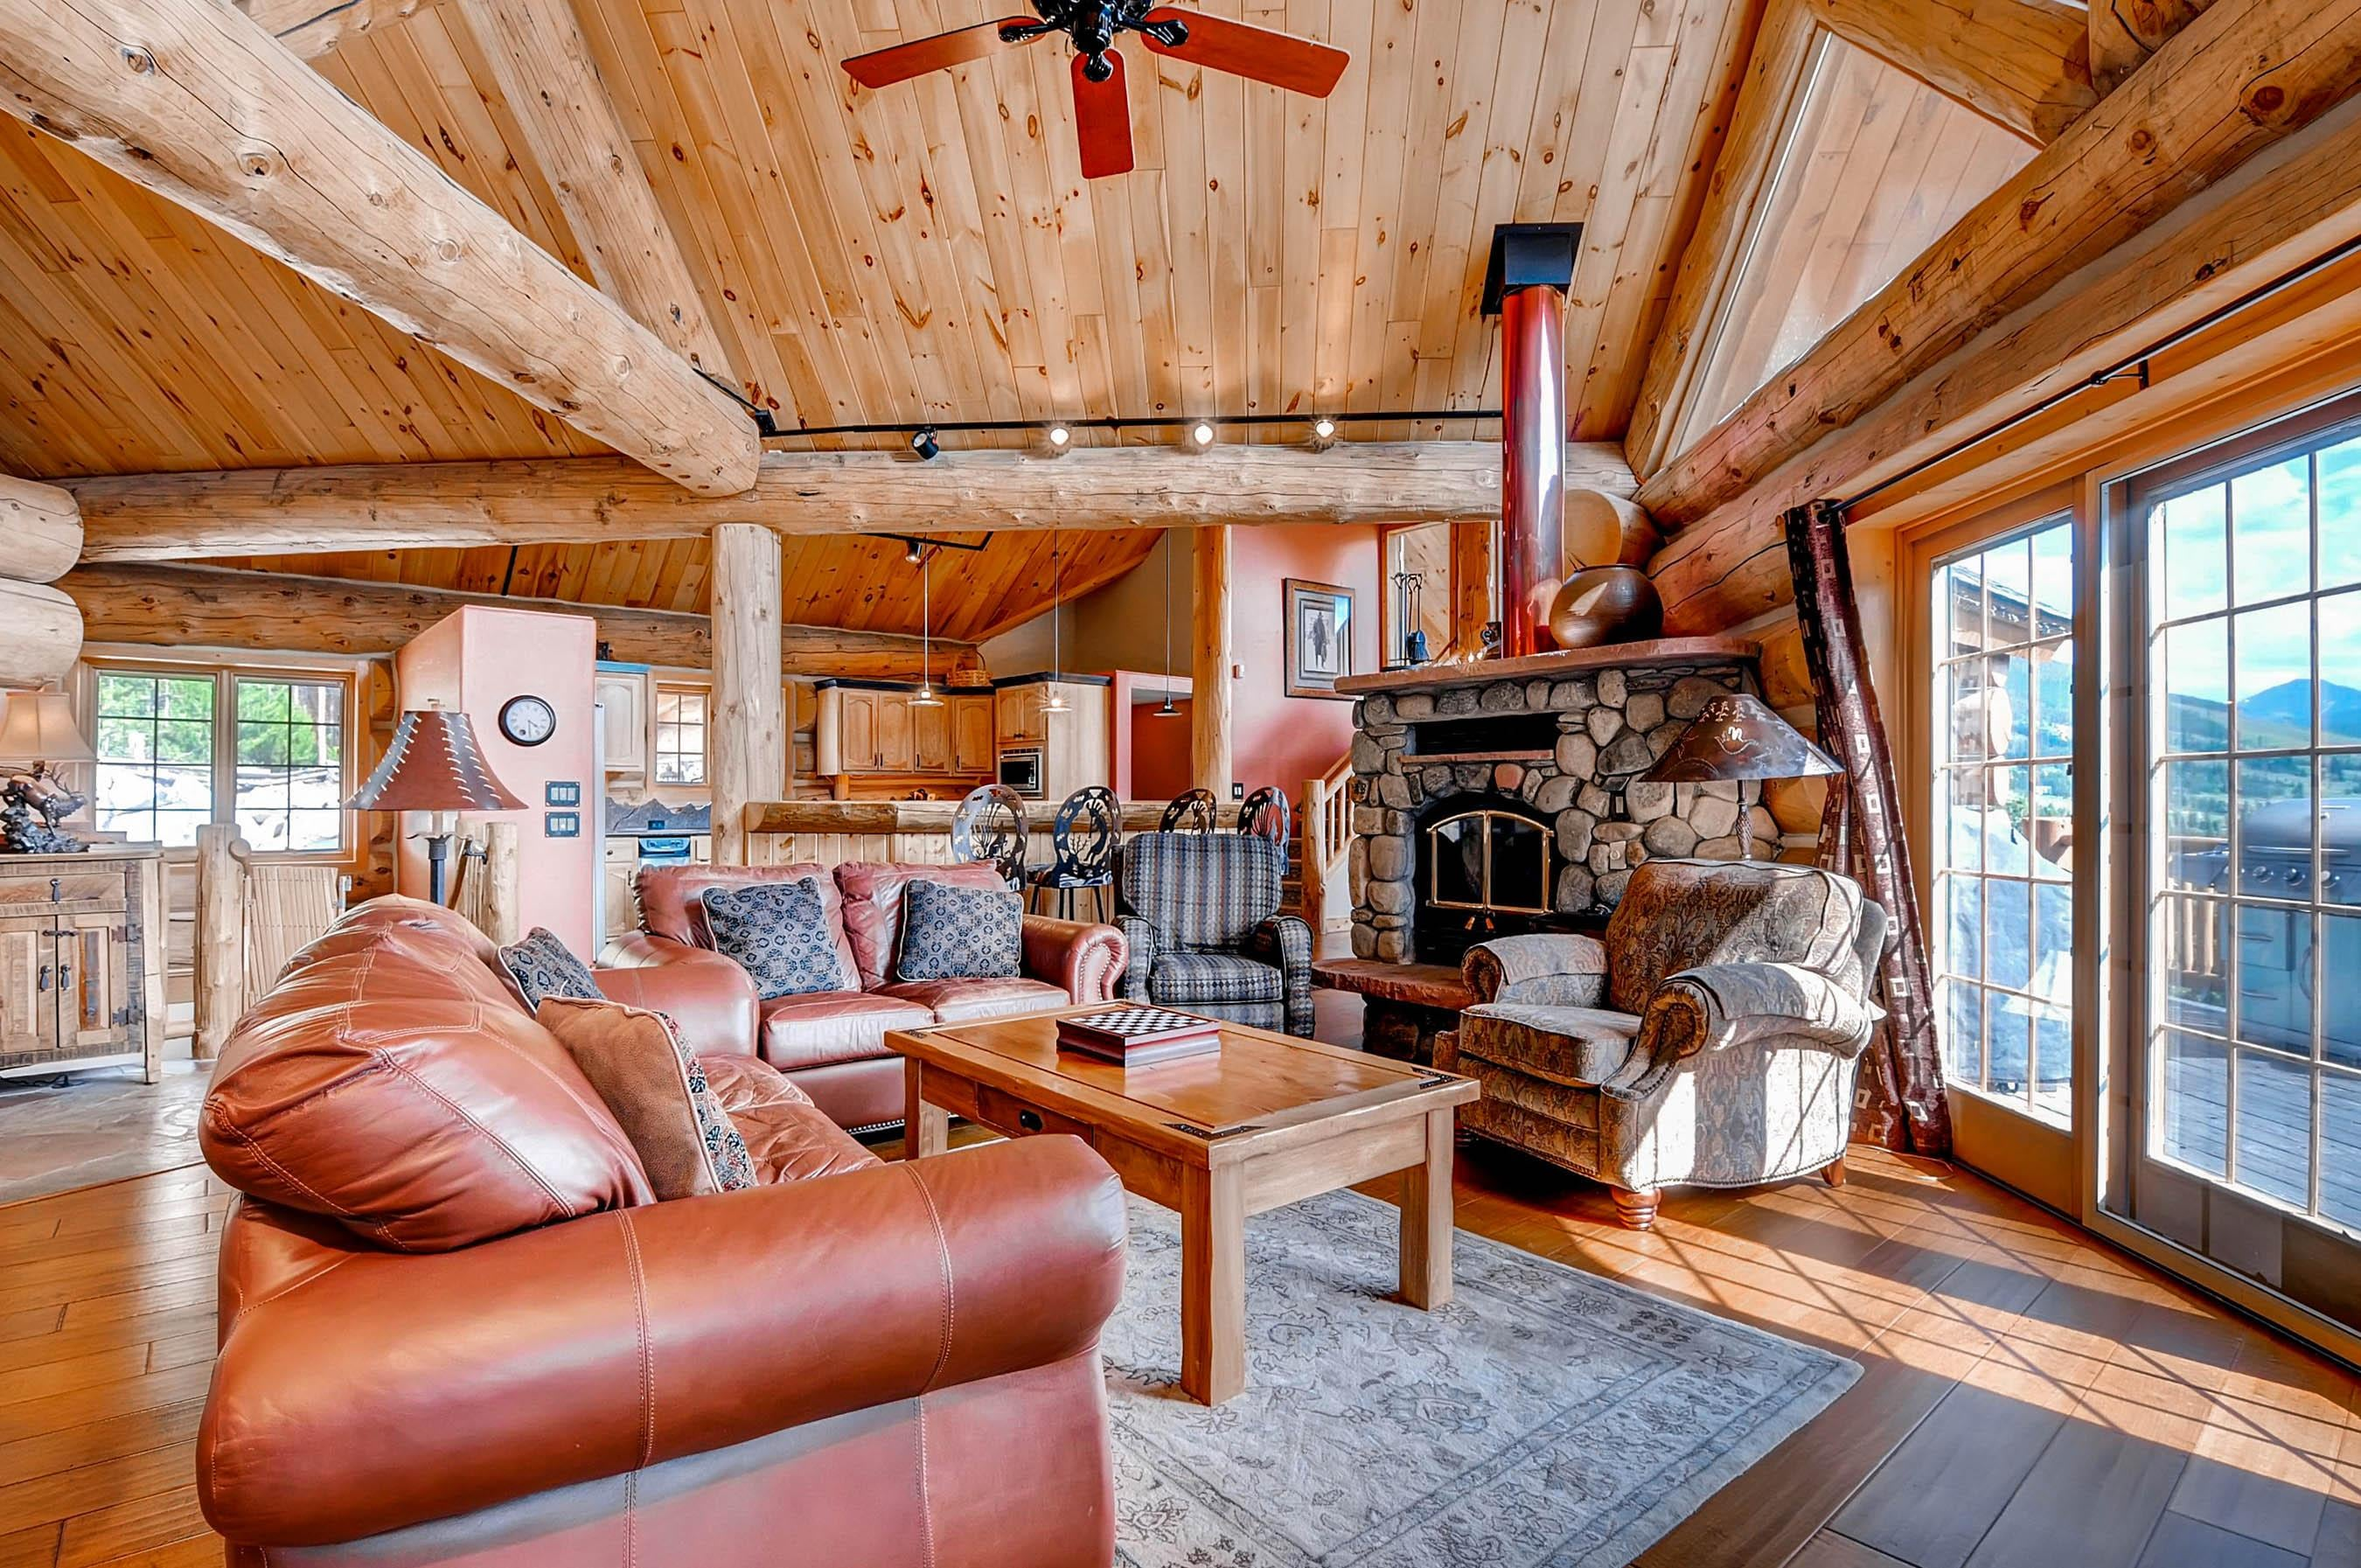 There's seating for 7 before a stone-laid wood stove in the spacious living room.